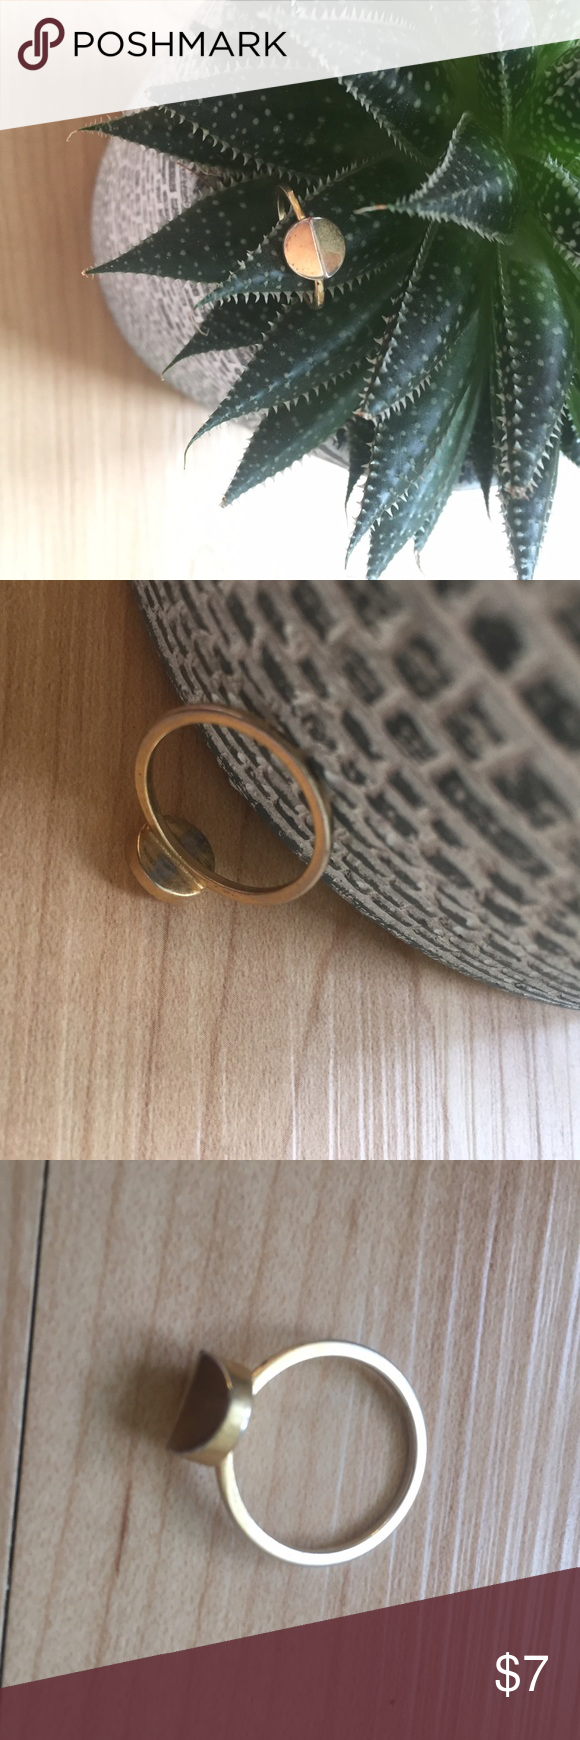 Madewell Gold Tone Facet Ring Size 6/7, shows a few signs of wear—gold coloring has one off on some of edges. Details in the photos. Madewell Jewelry Rings